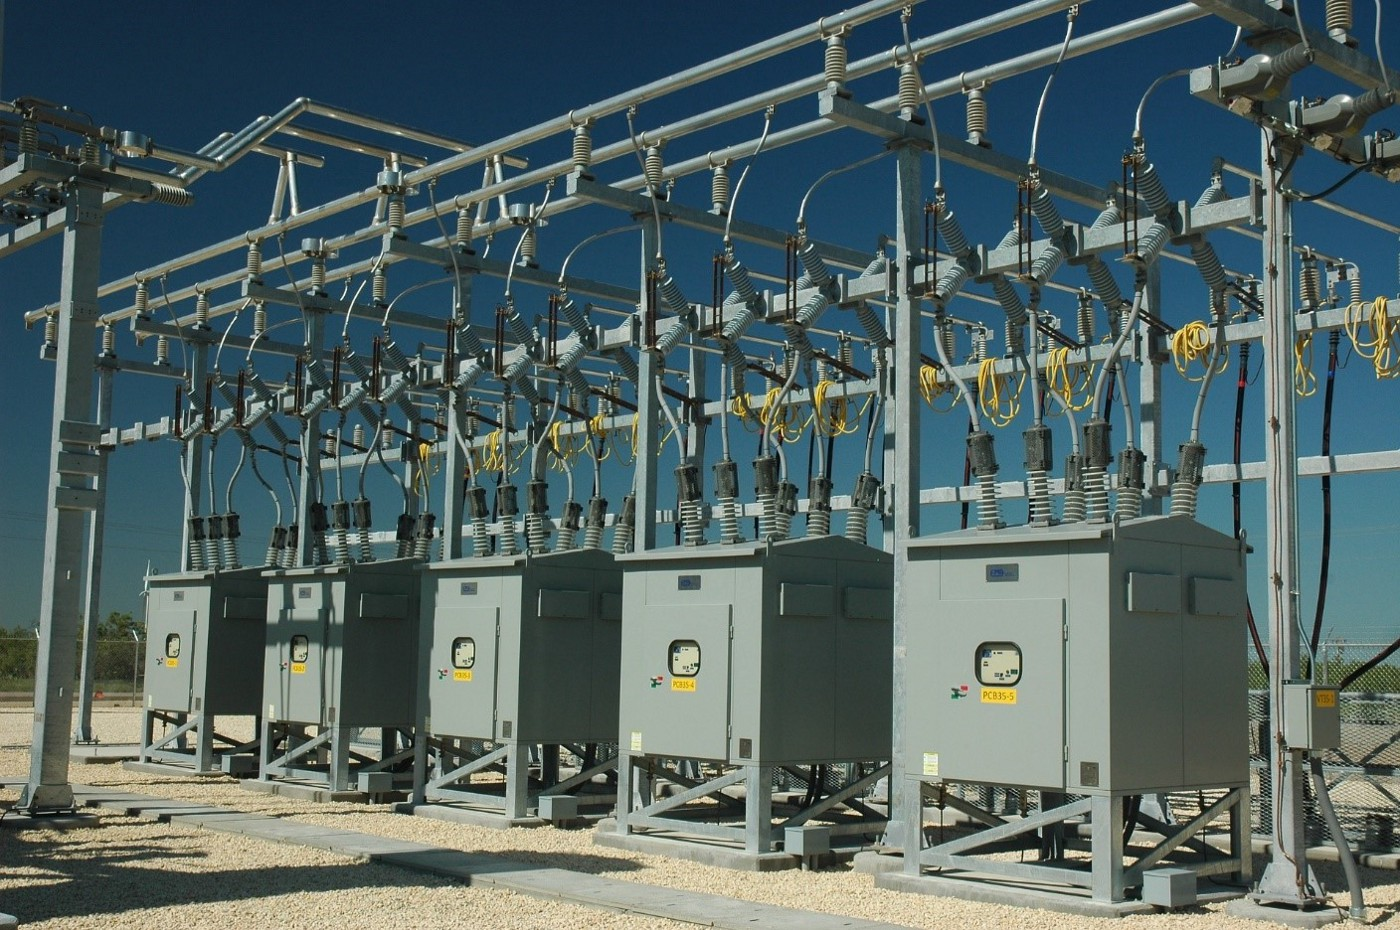 power systems facilities field unit